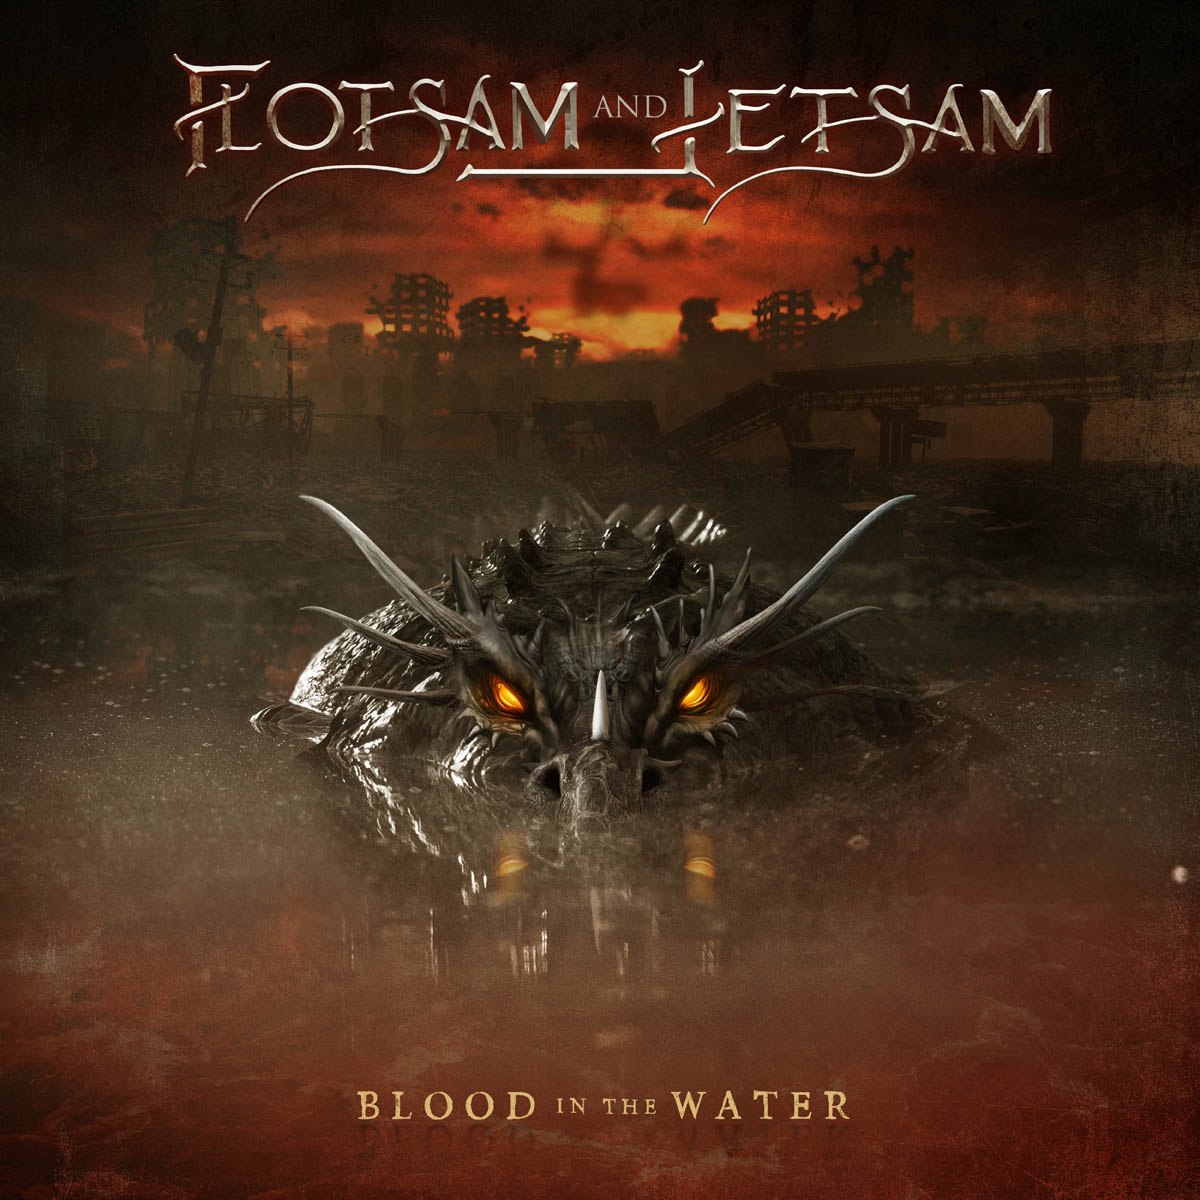 flotsam and jetsam blood in the water album cover